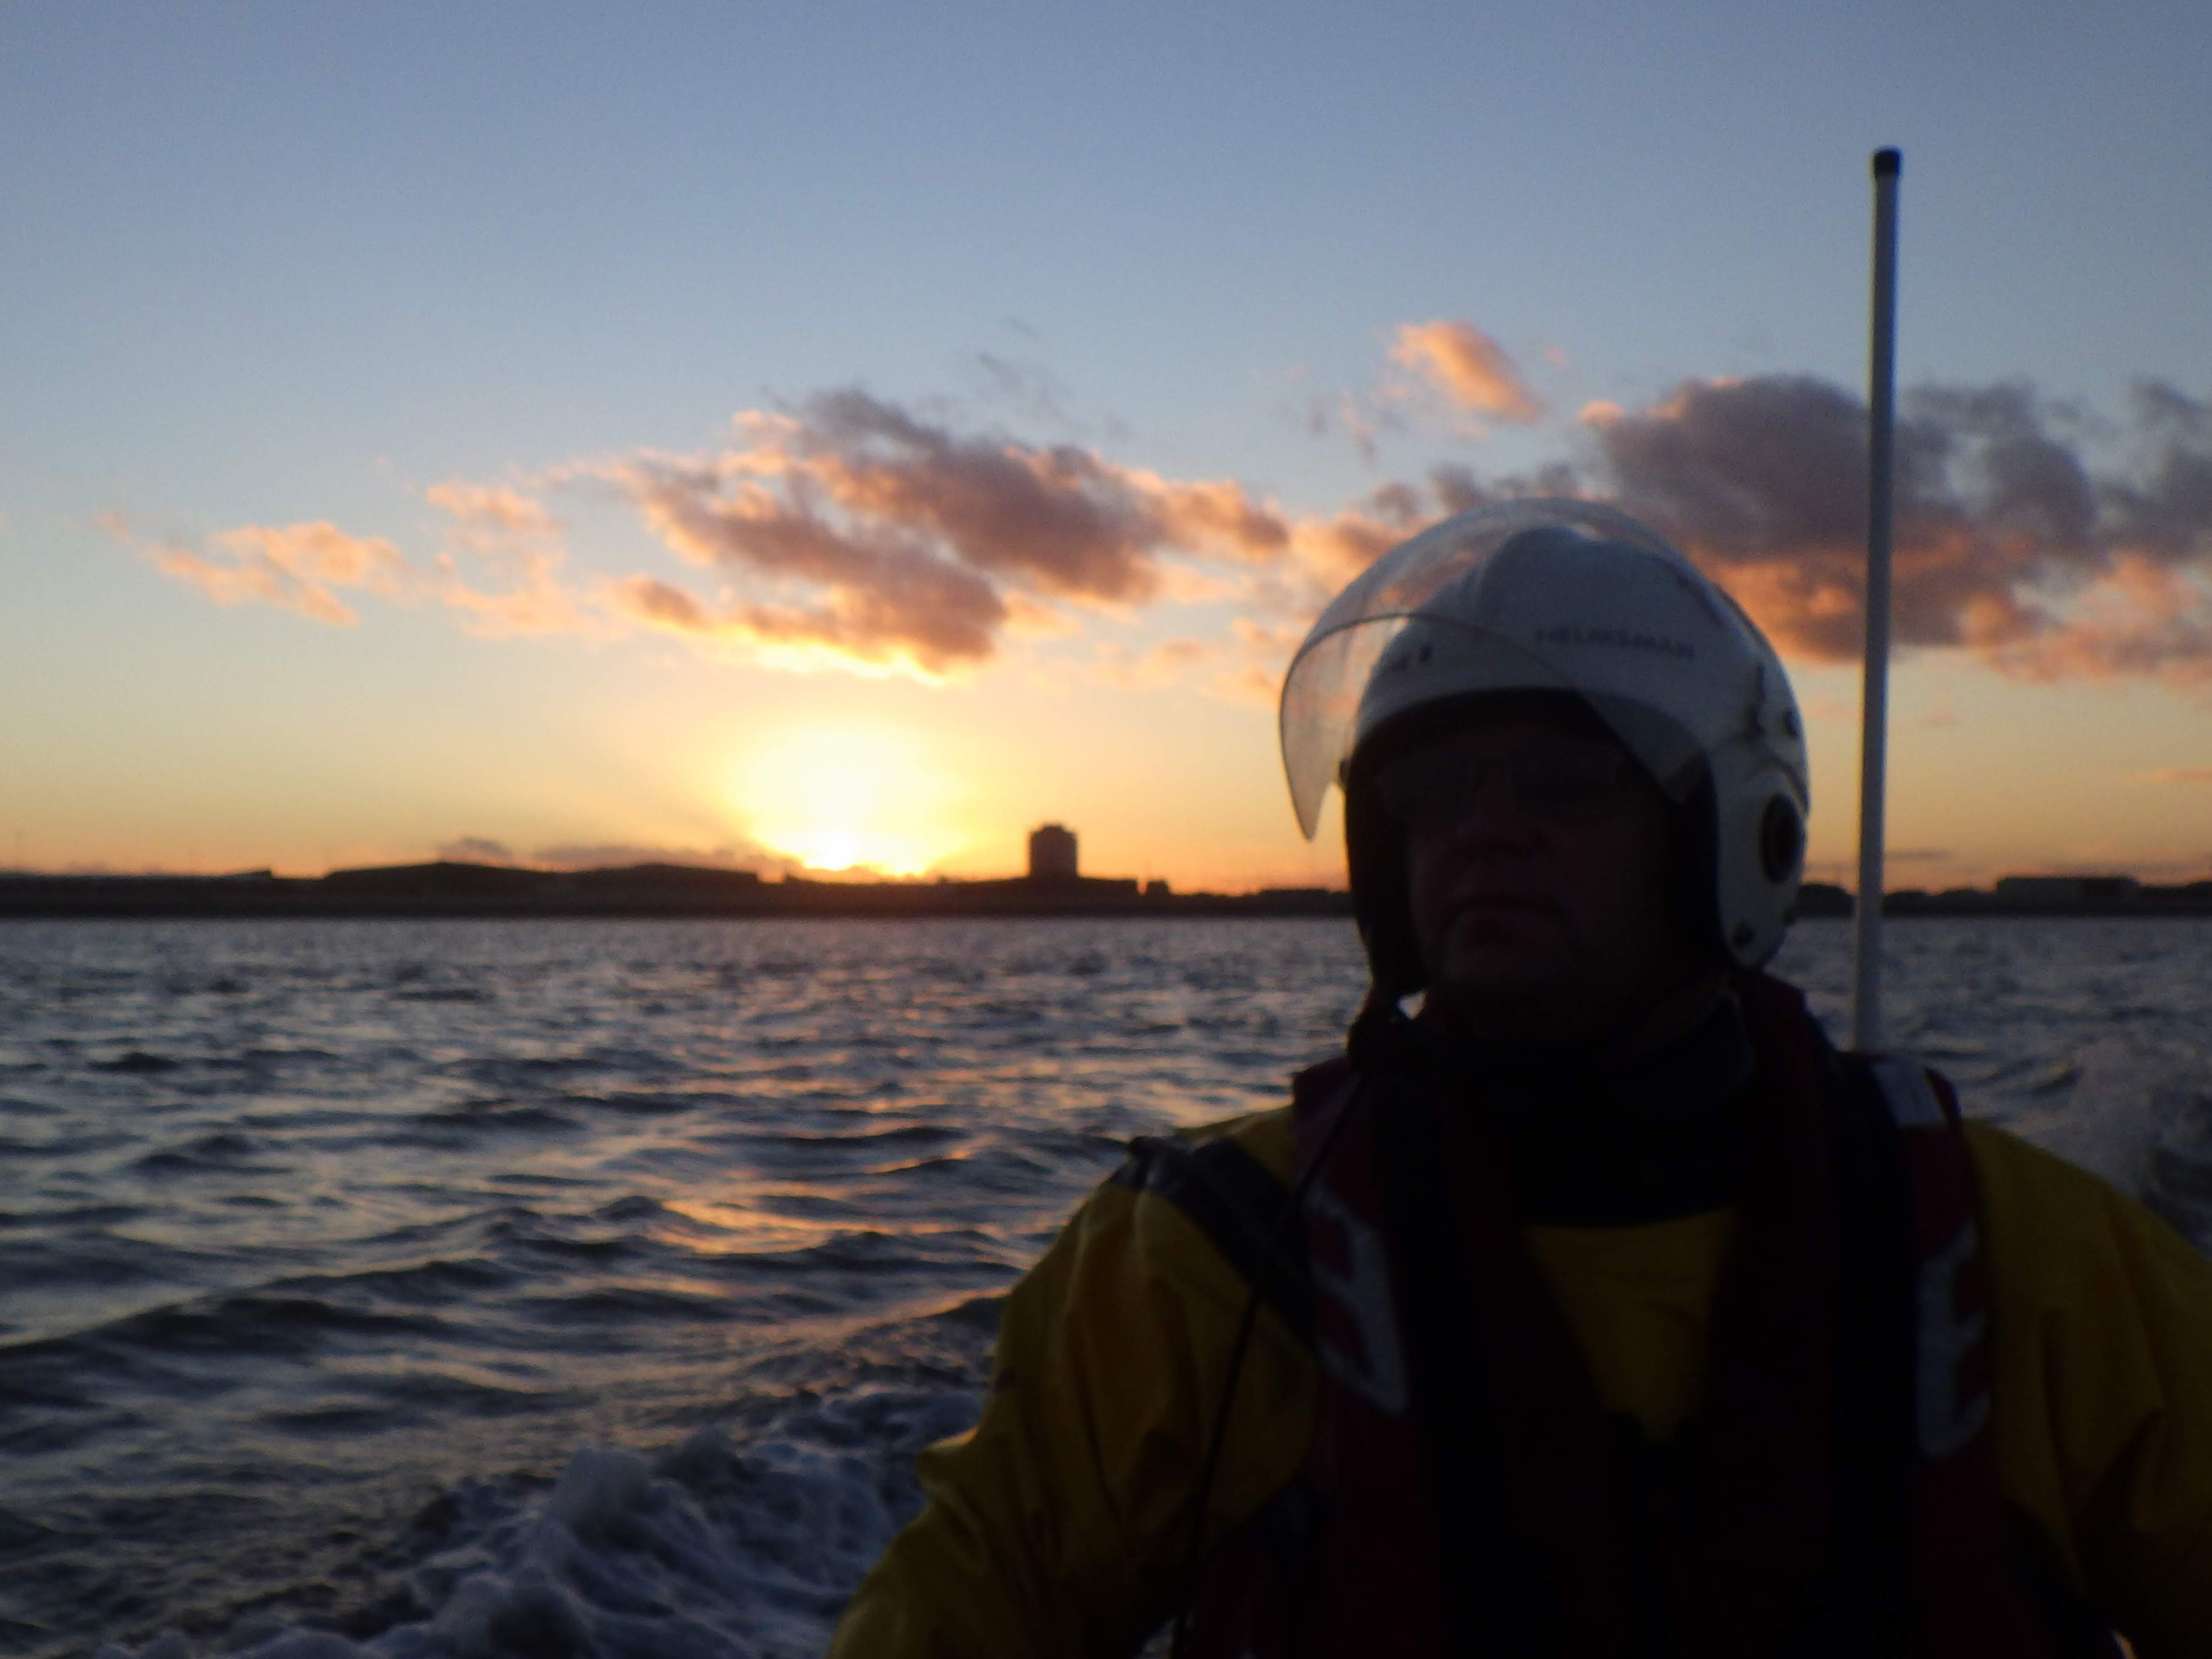 Sunset from lifeboat with helm visible in silhouette